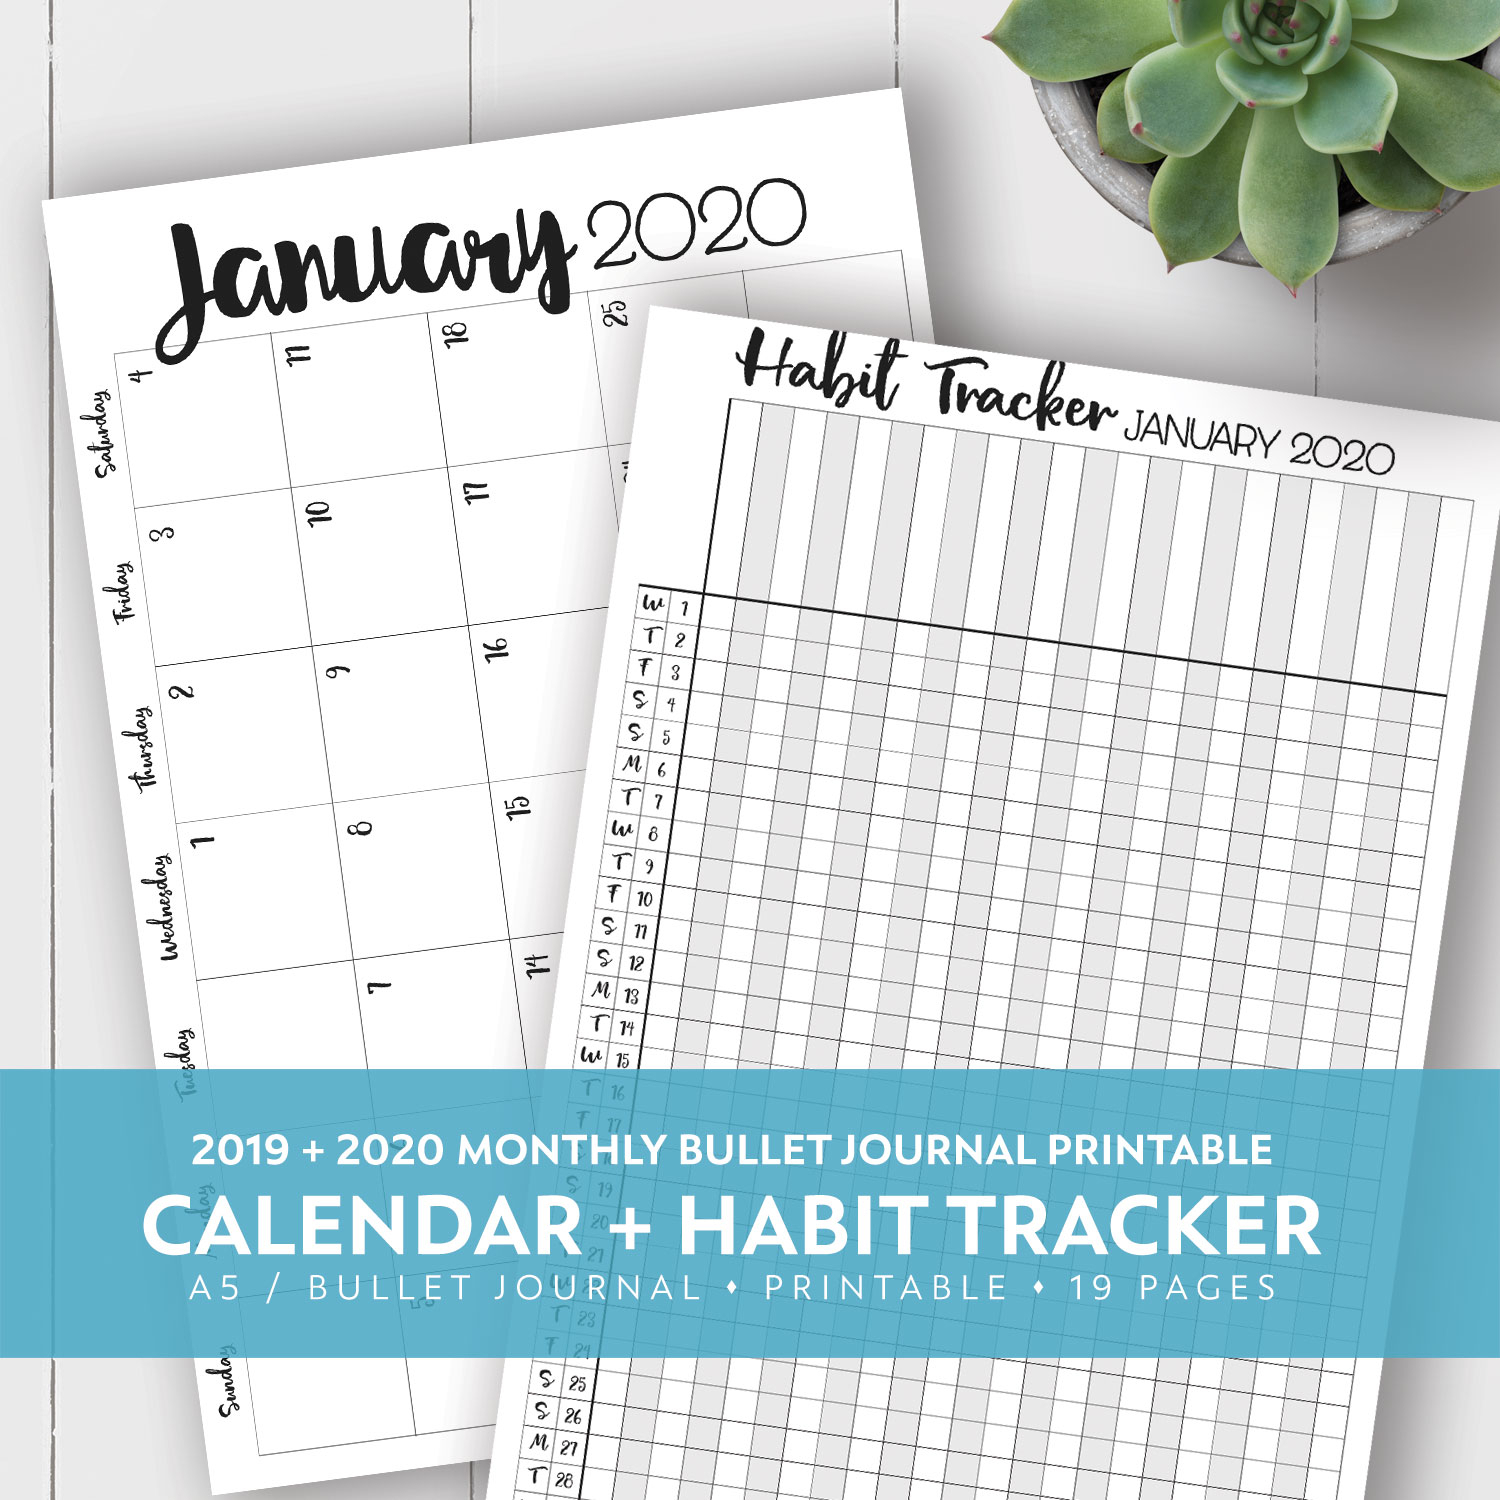 2019 + 2020 Monthly Printable Calendar + Habit Tracker Kit